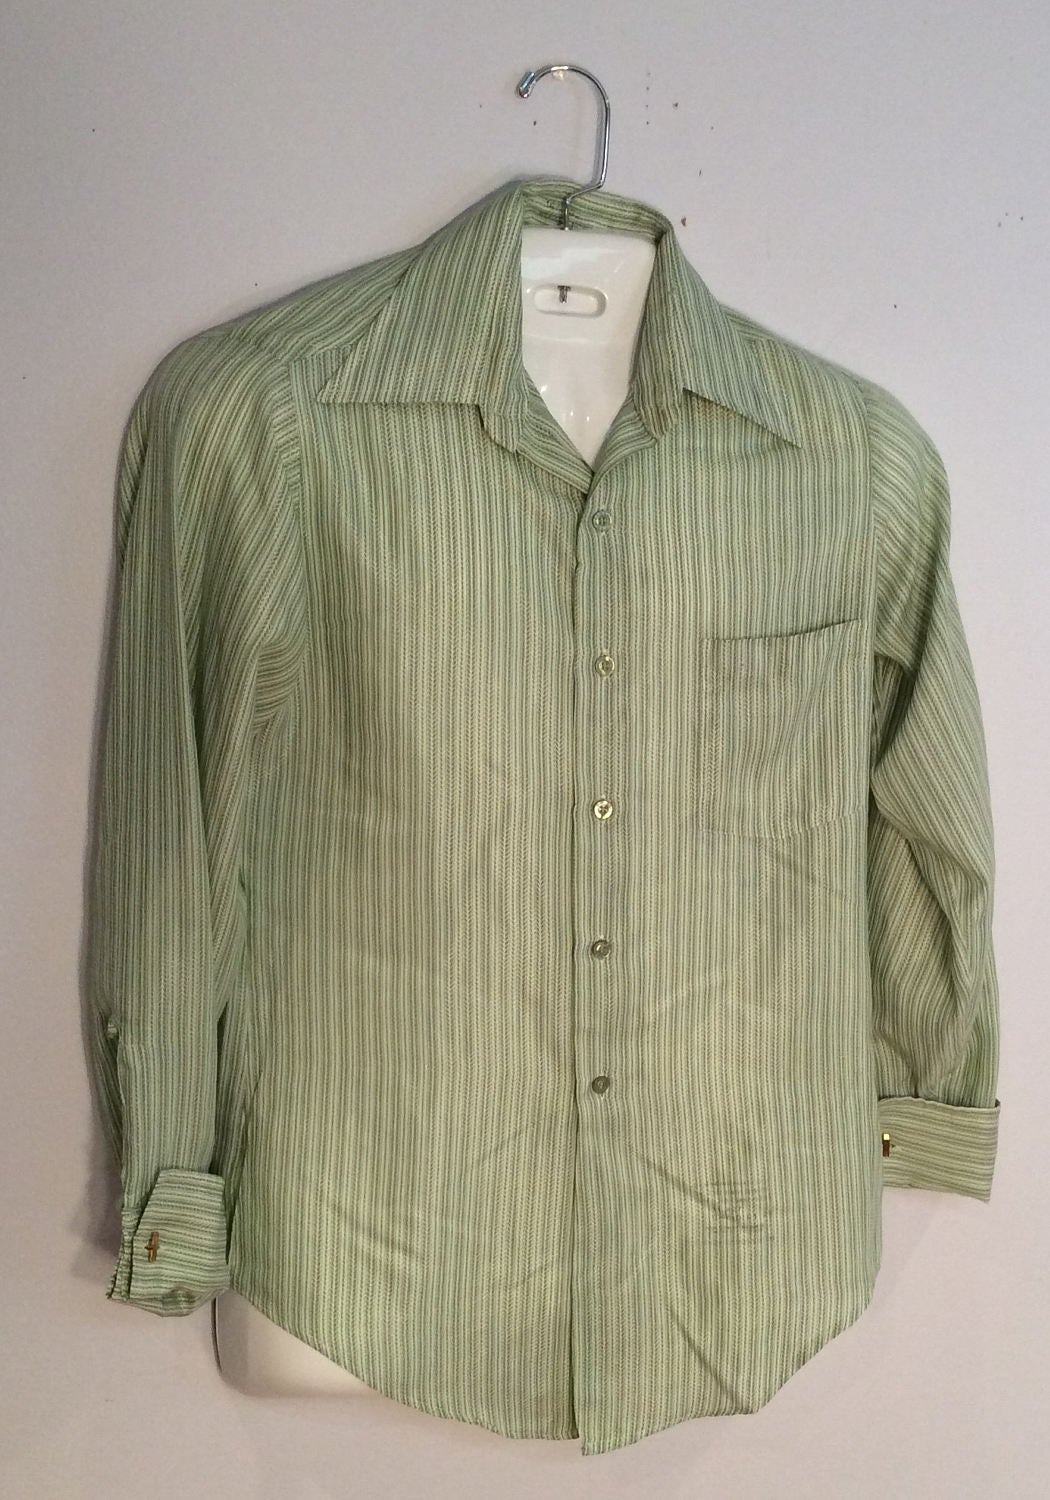 1970s Mens Shirt Styles – Vintage 70s Shirts for Guys Hampshire House By Van Heusen Green  White Stripe 1970s French Cuff Mens Shirt $7.00 AT vintagedancer.com